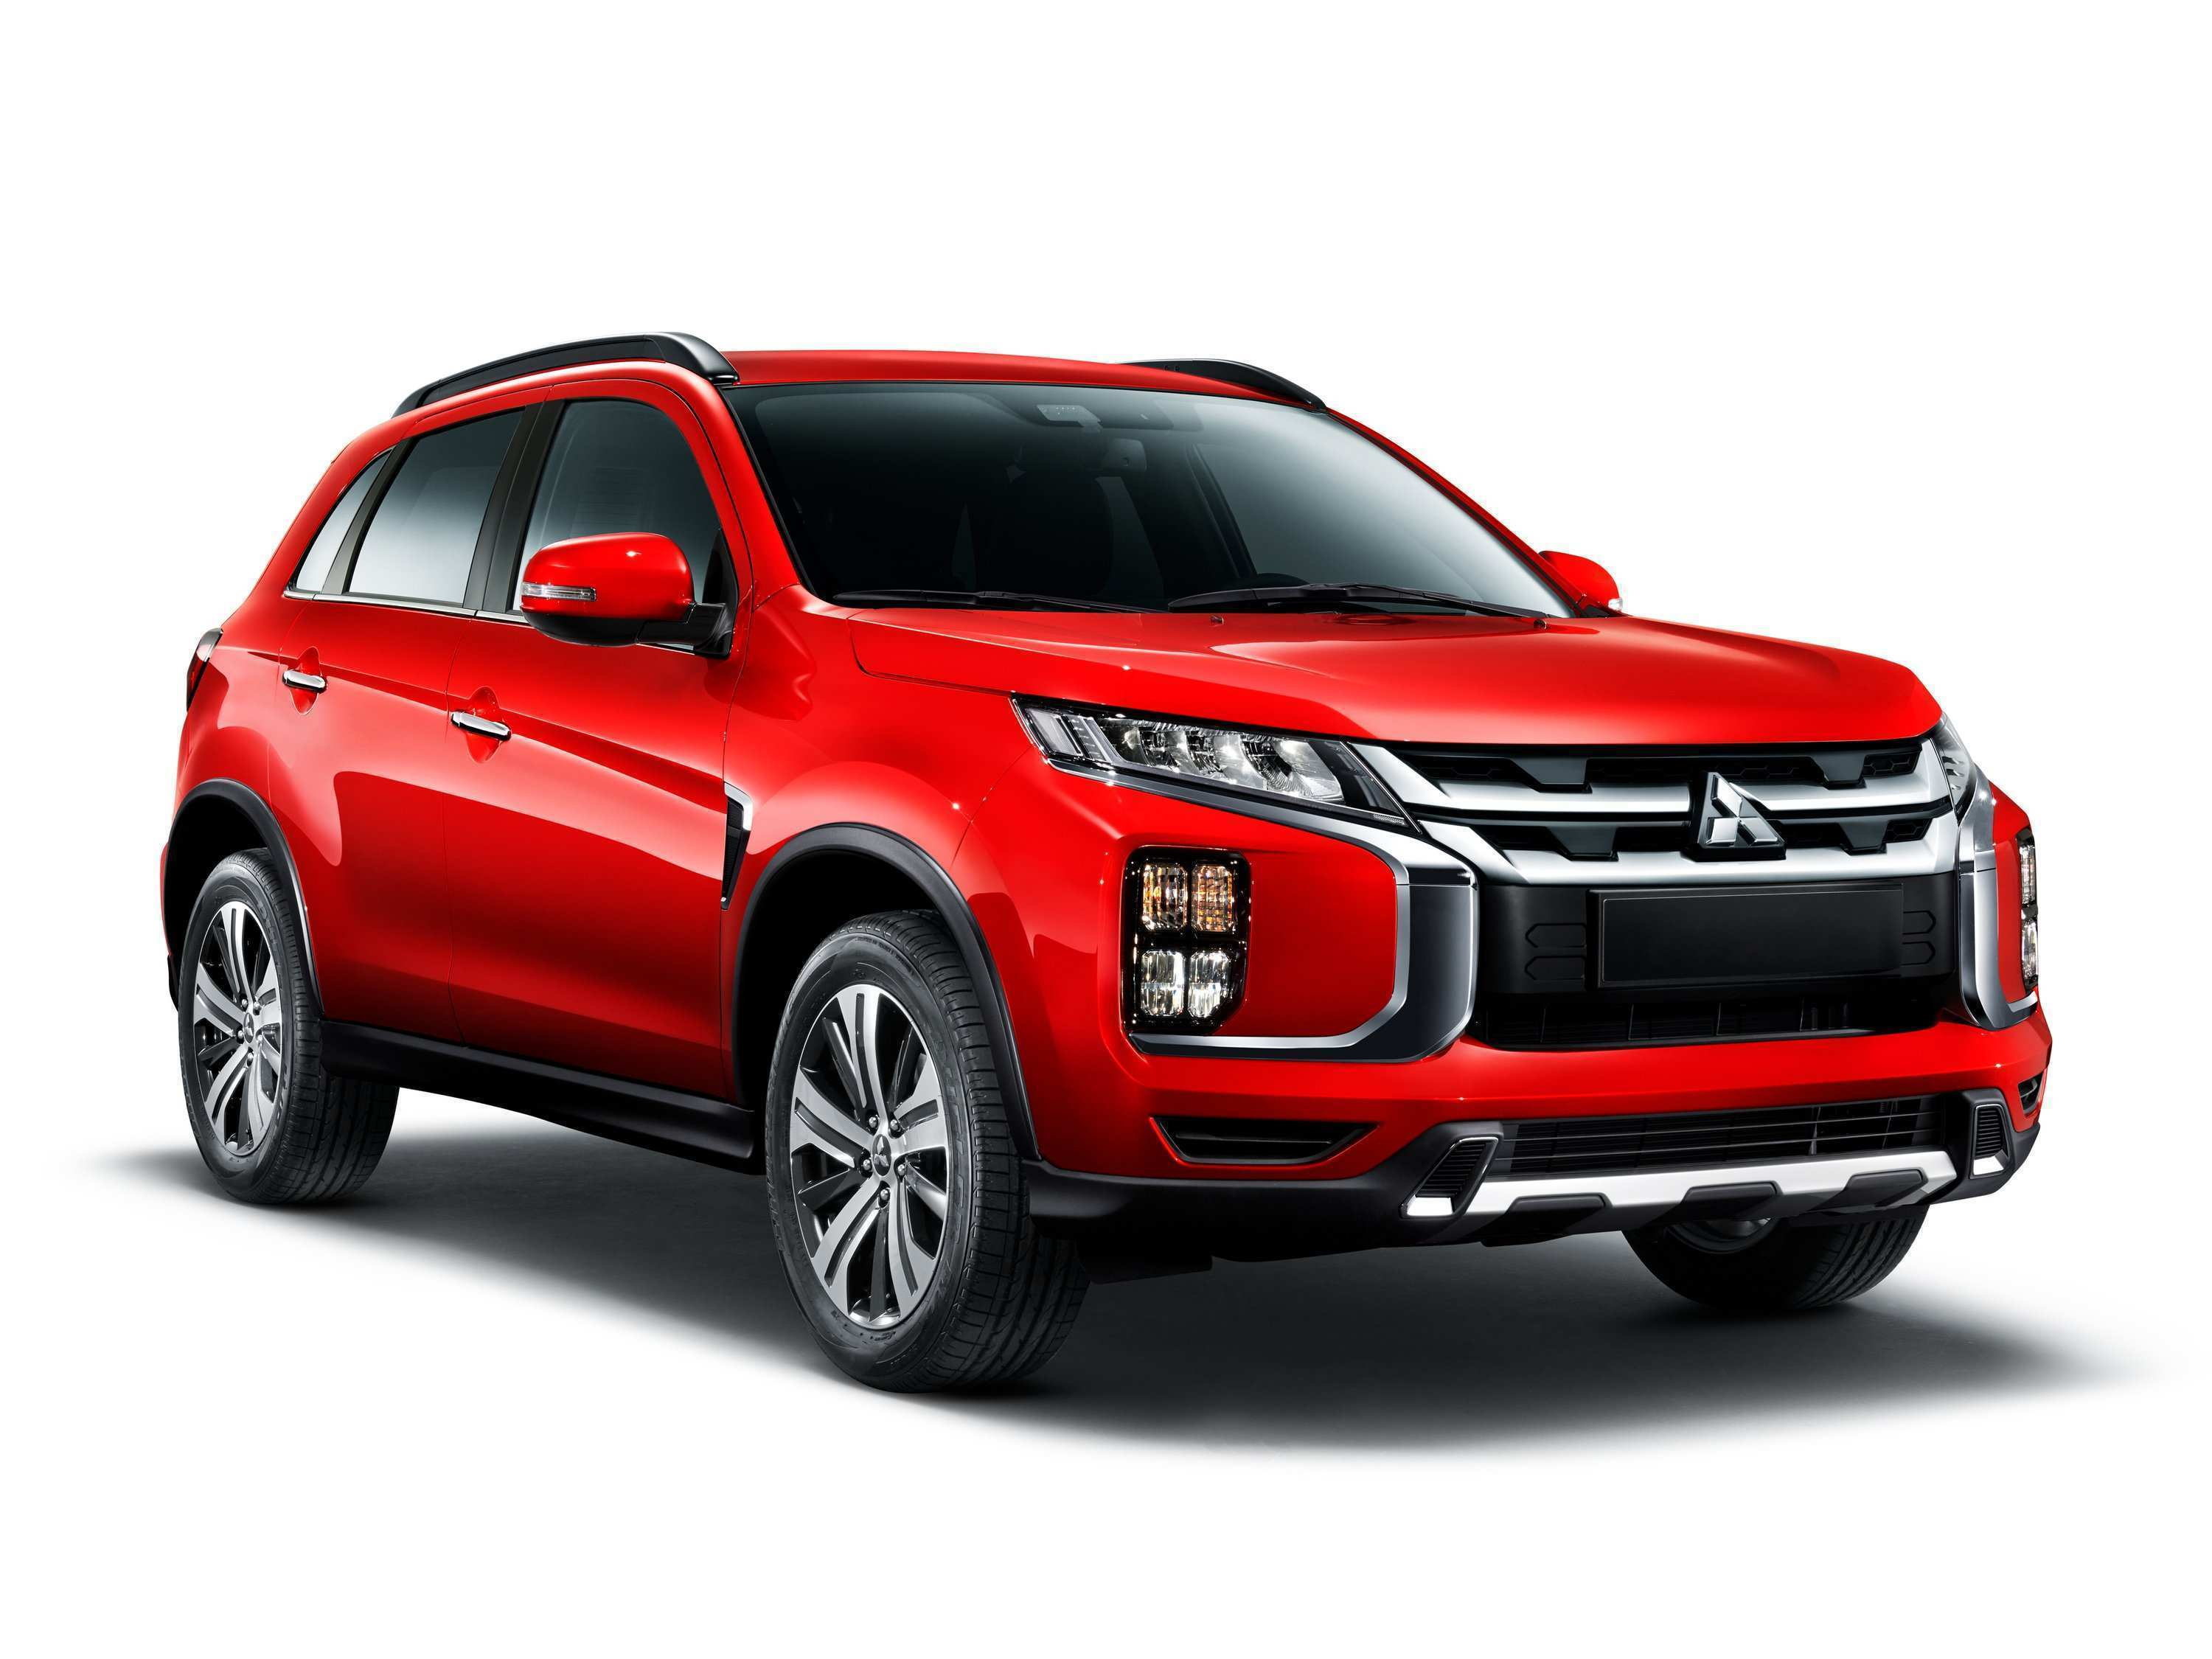 87 The Mitsubishi Outlander 2020 Review Concept